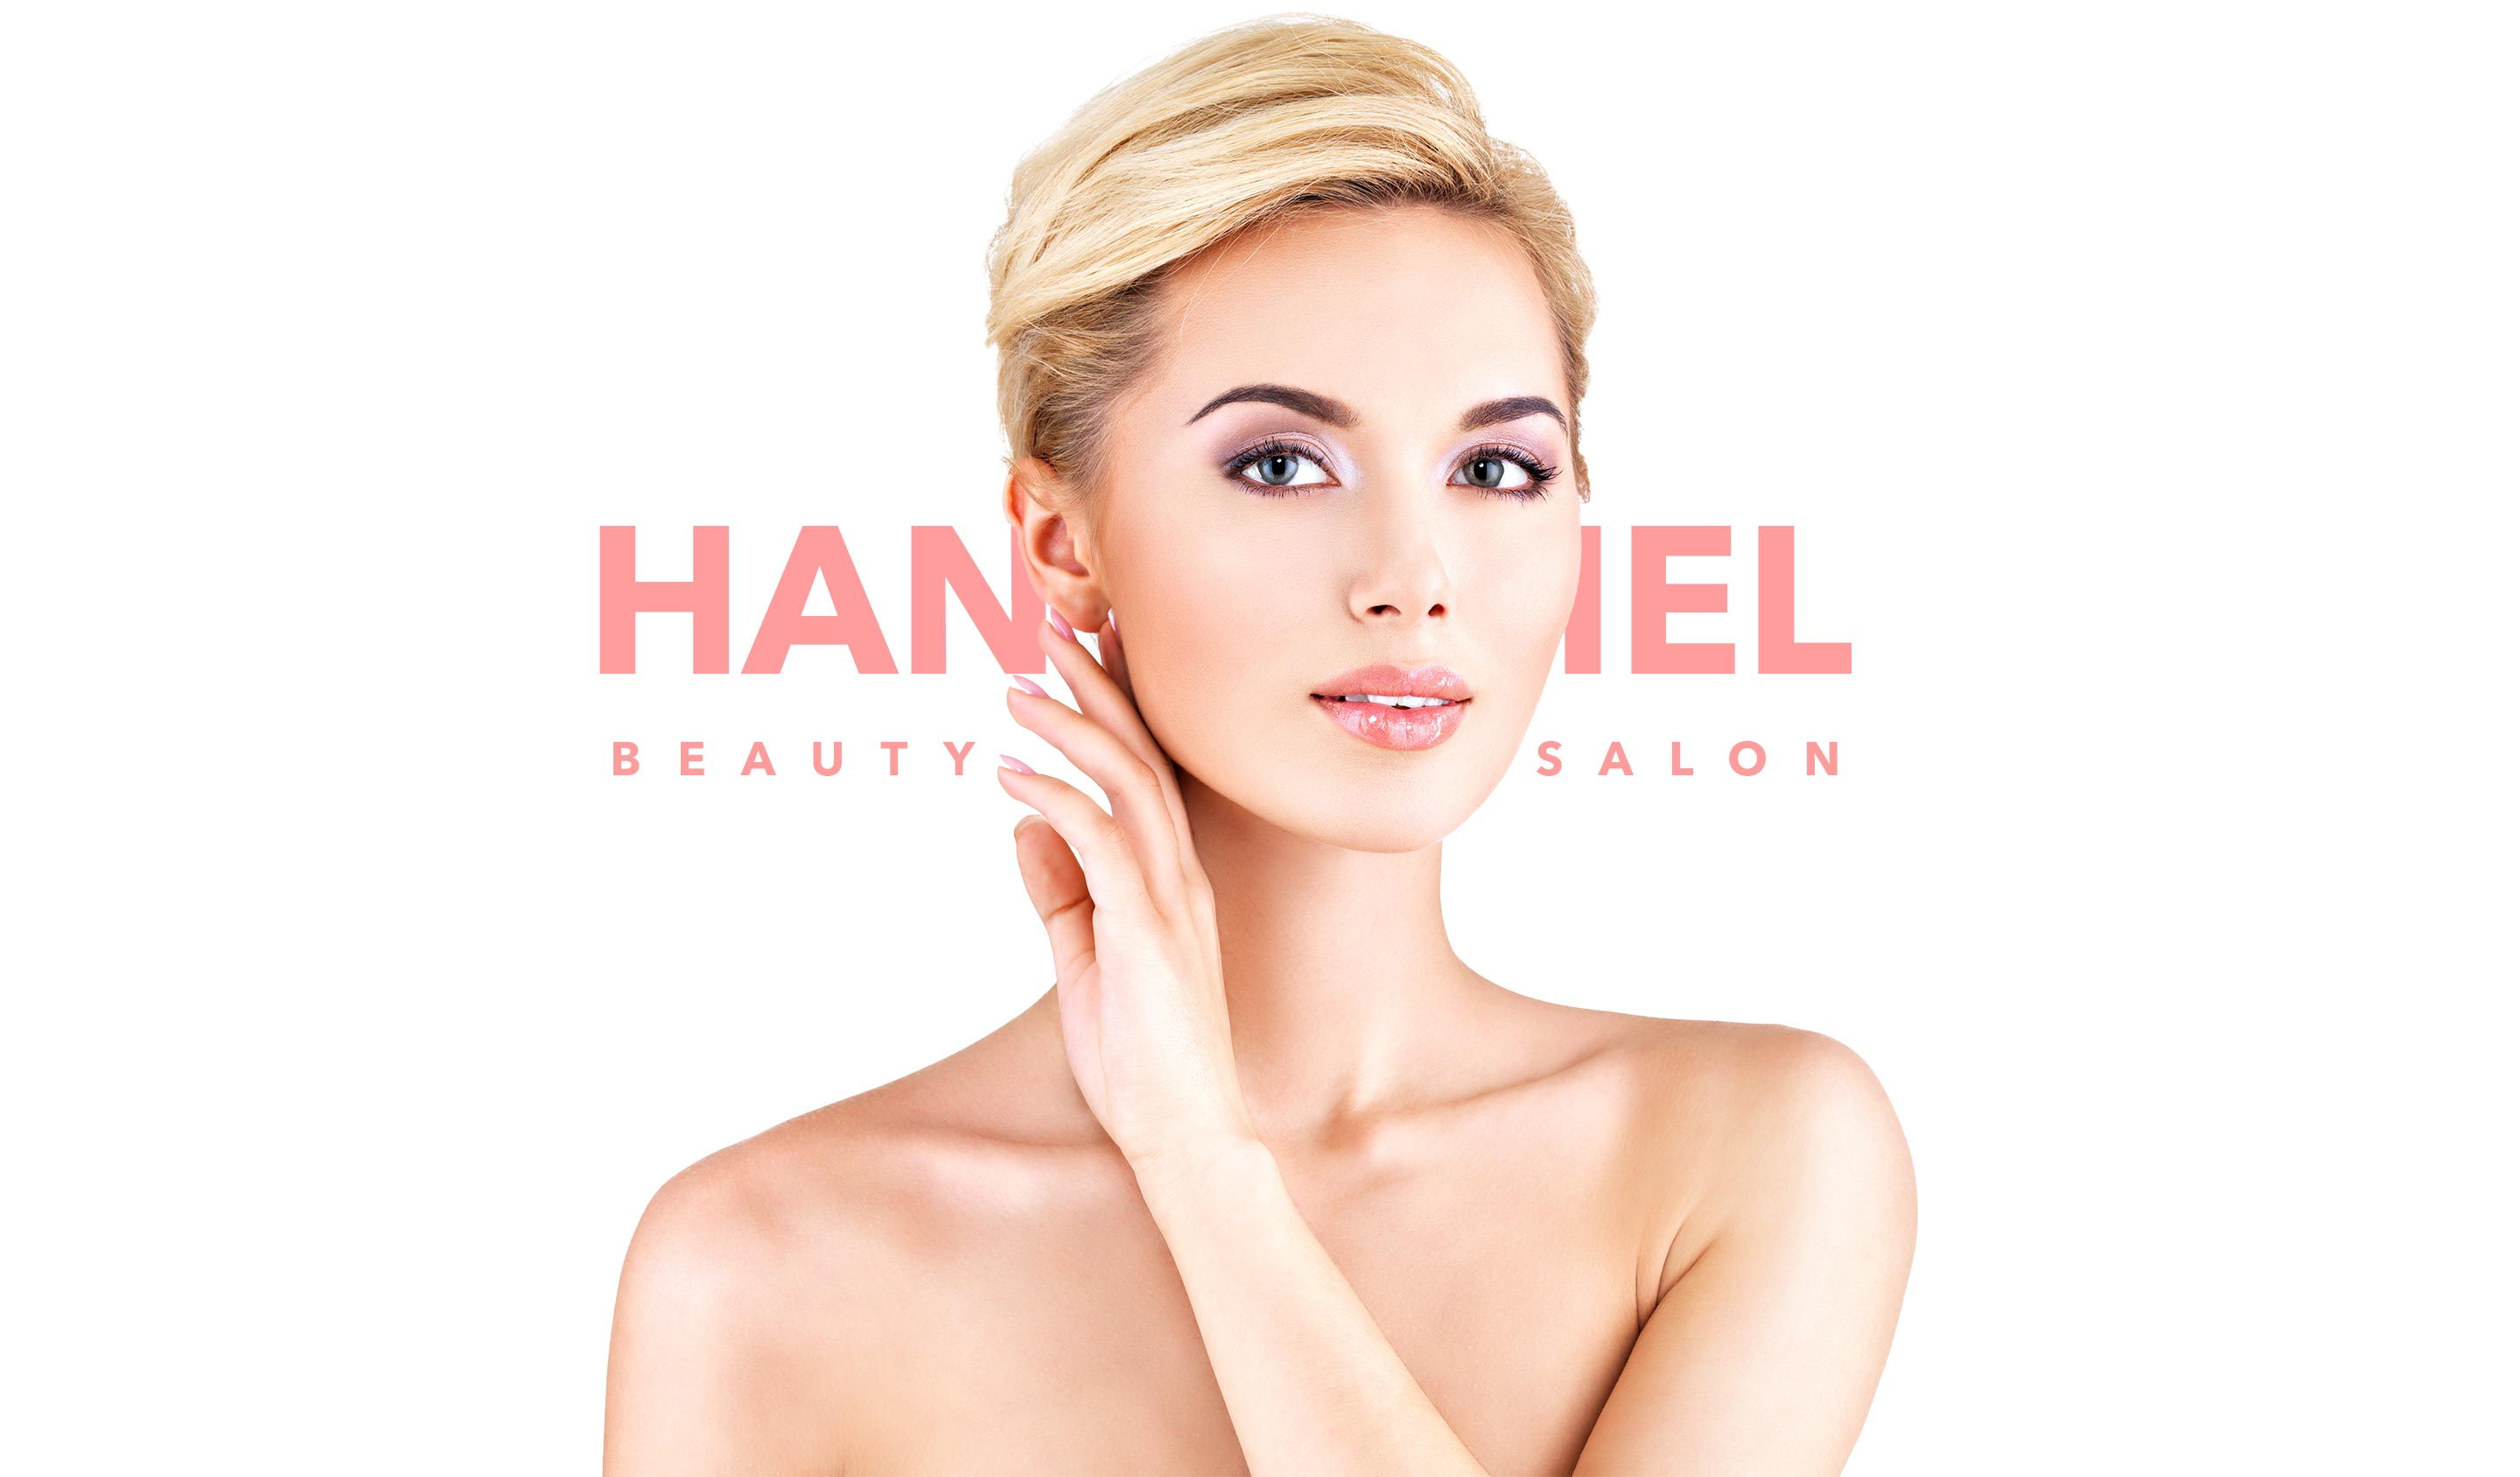 Haniel Beauty